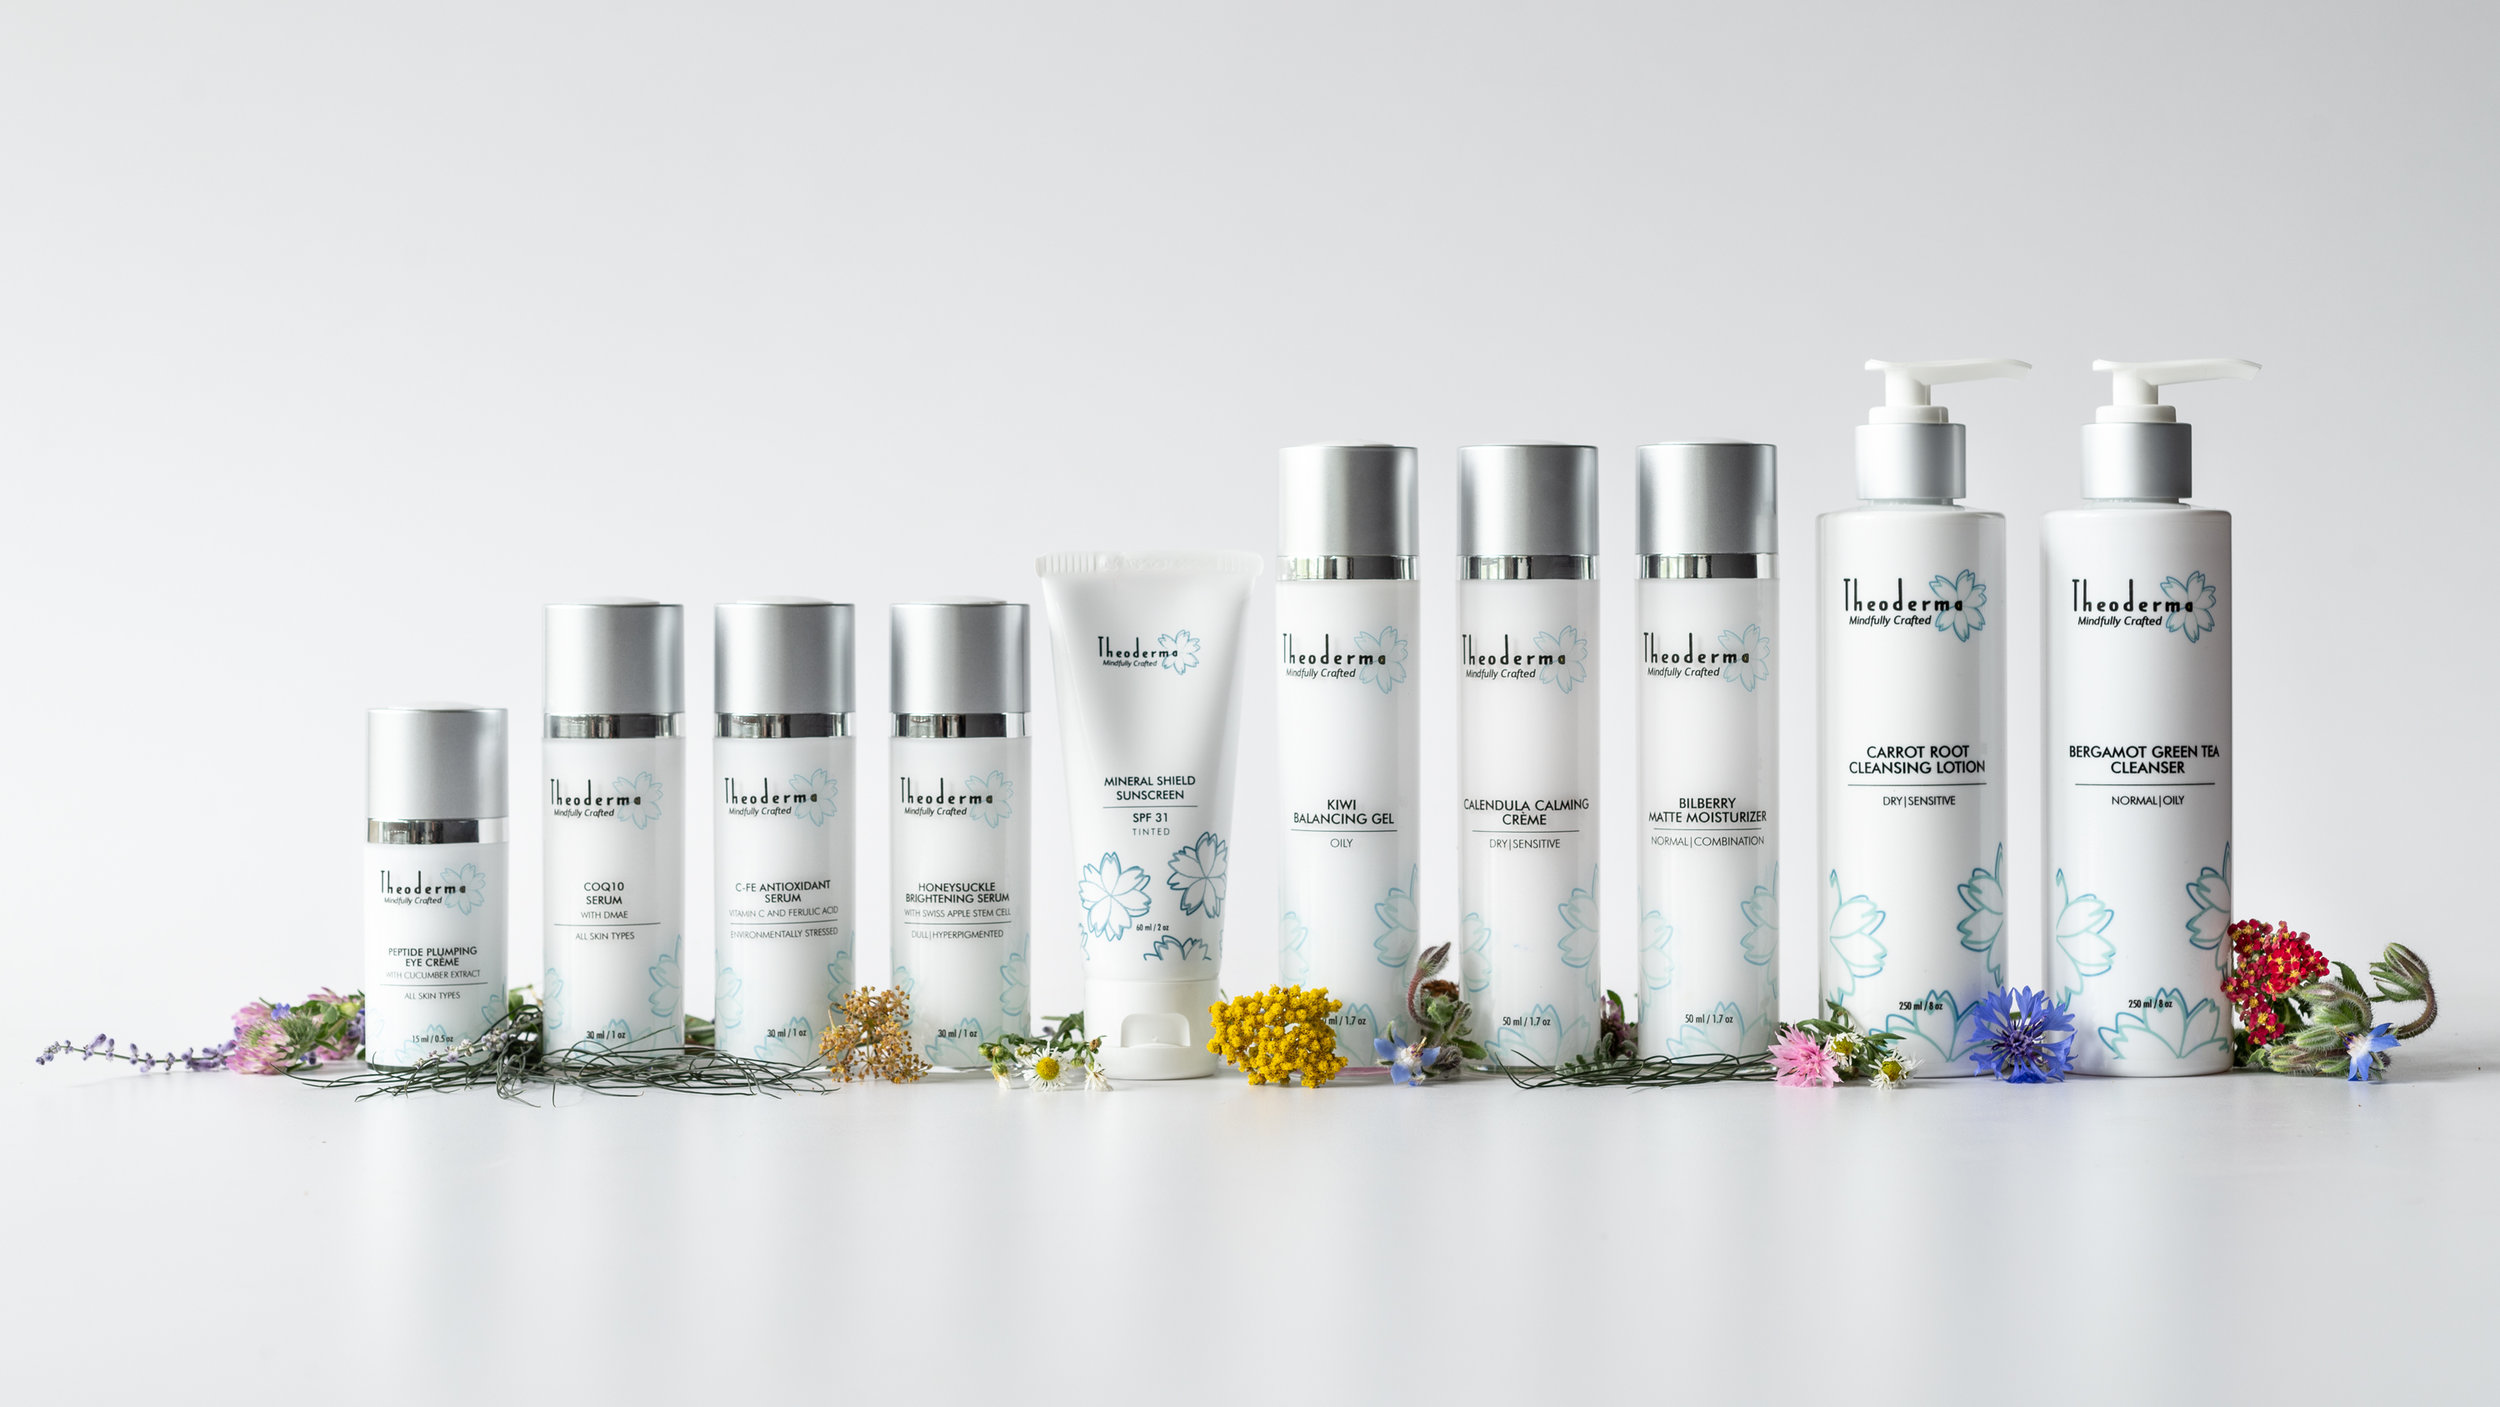 Theoderma skincare product shoot in studio